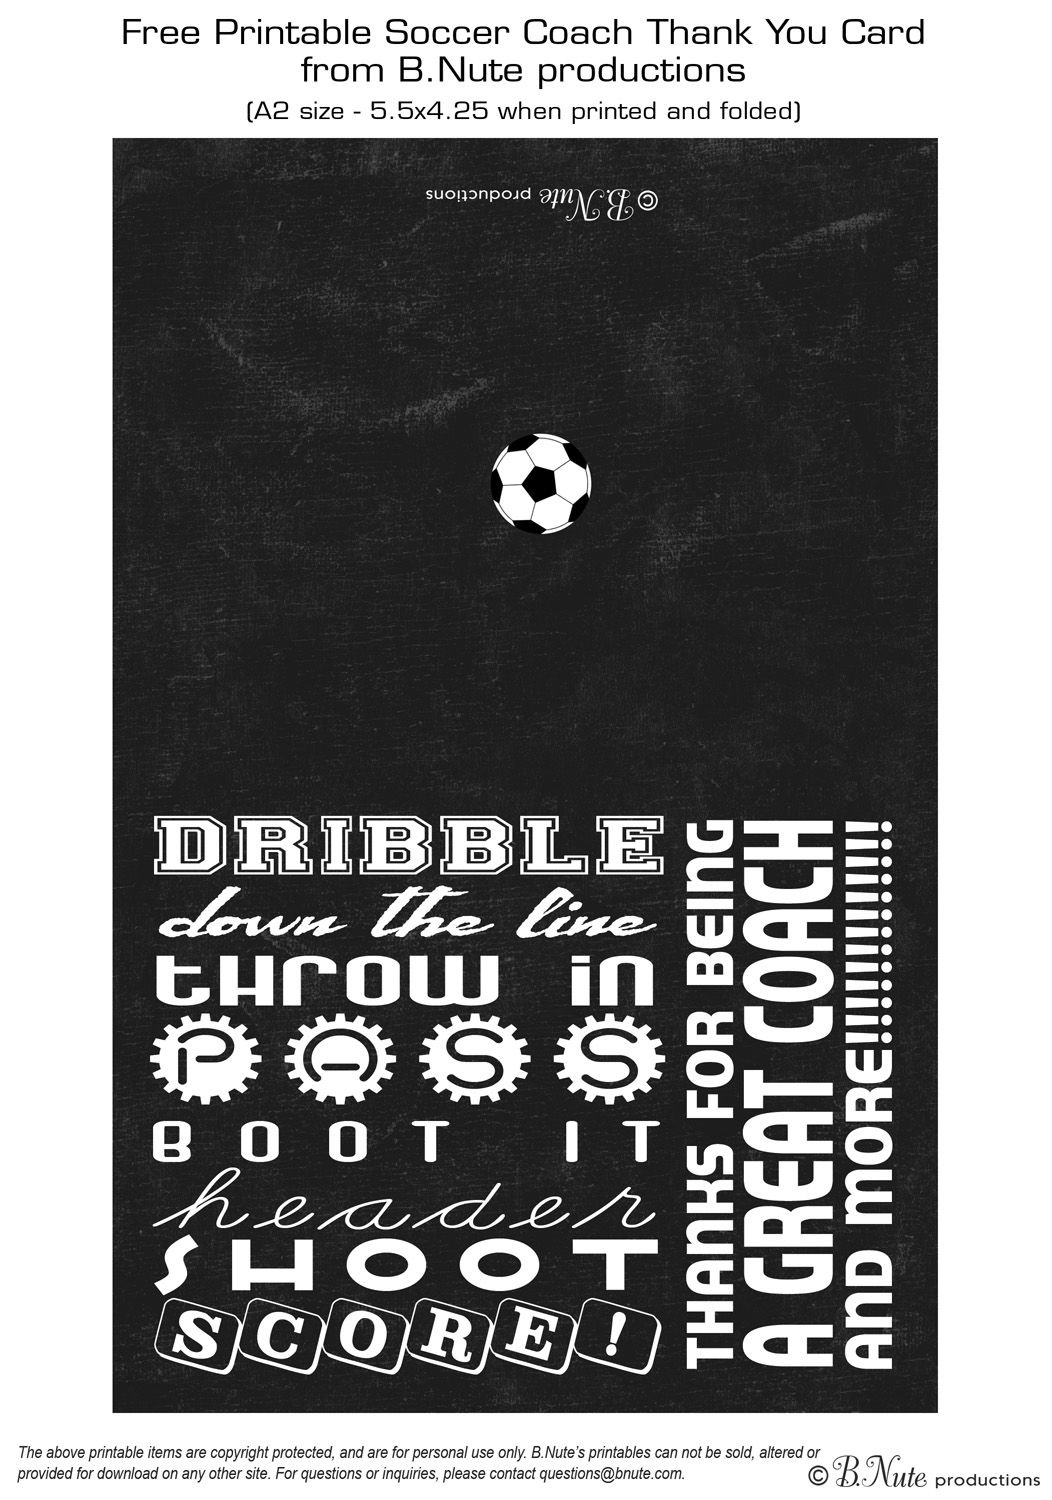 Free Printable Soccer Coach Thank You Card From B.nute Productions - Free Printable Soccer Thank You Cards